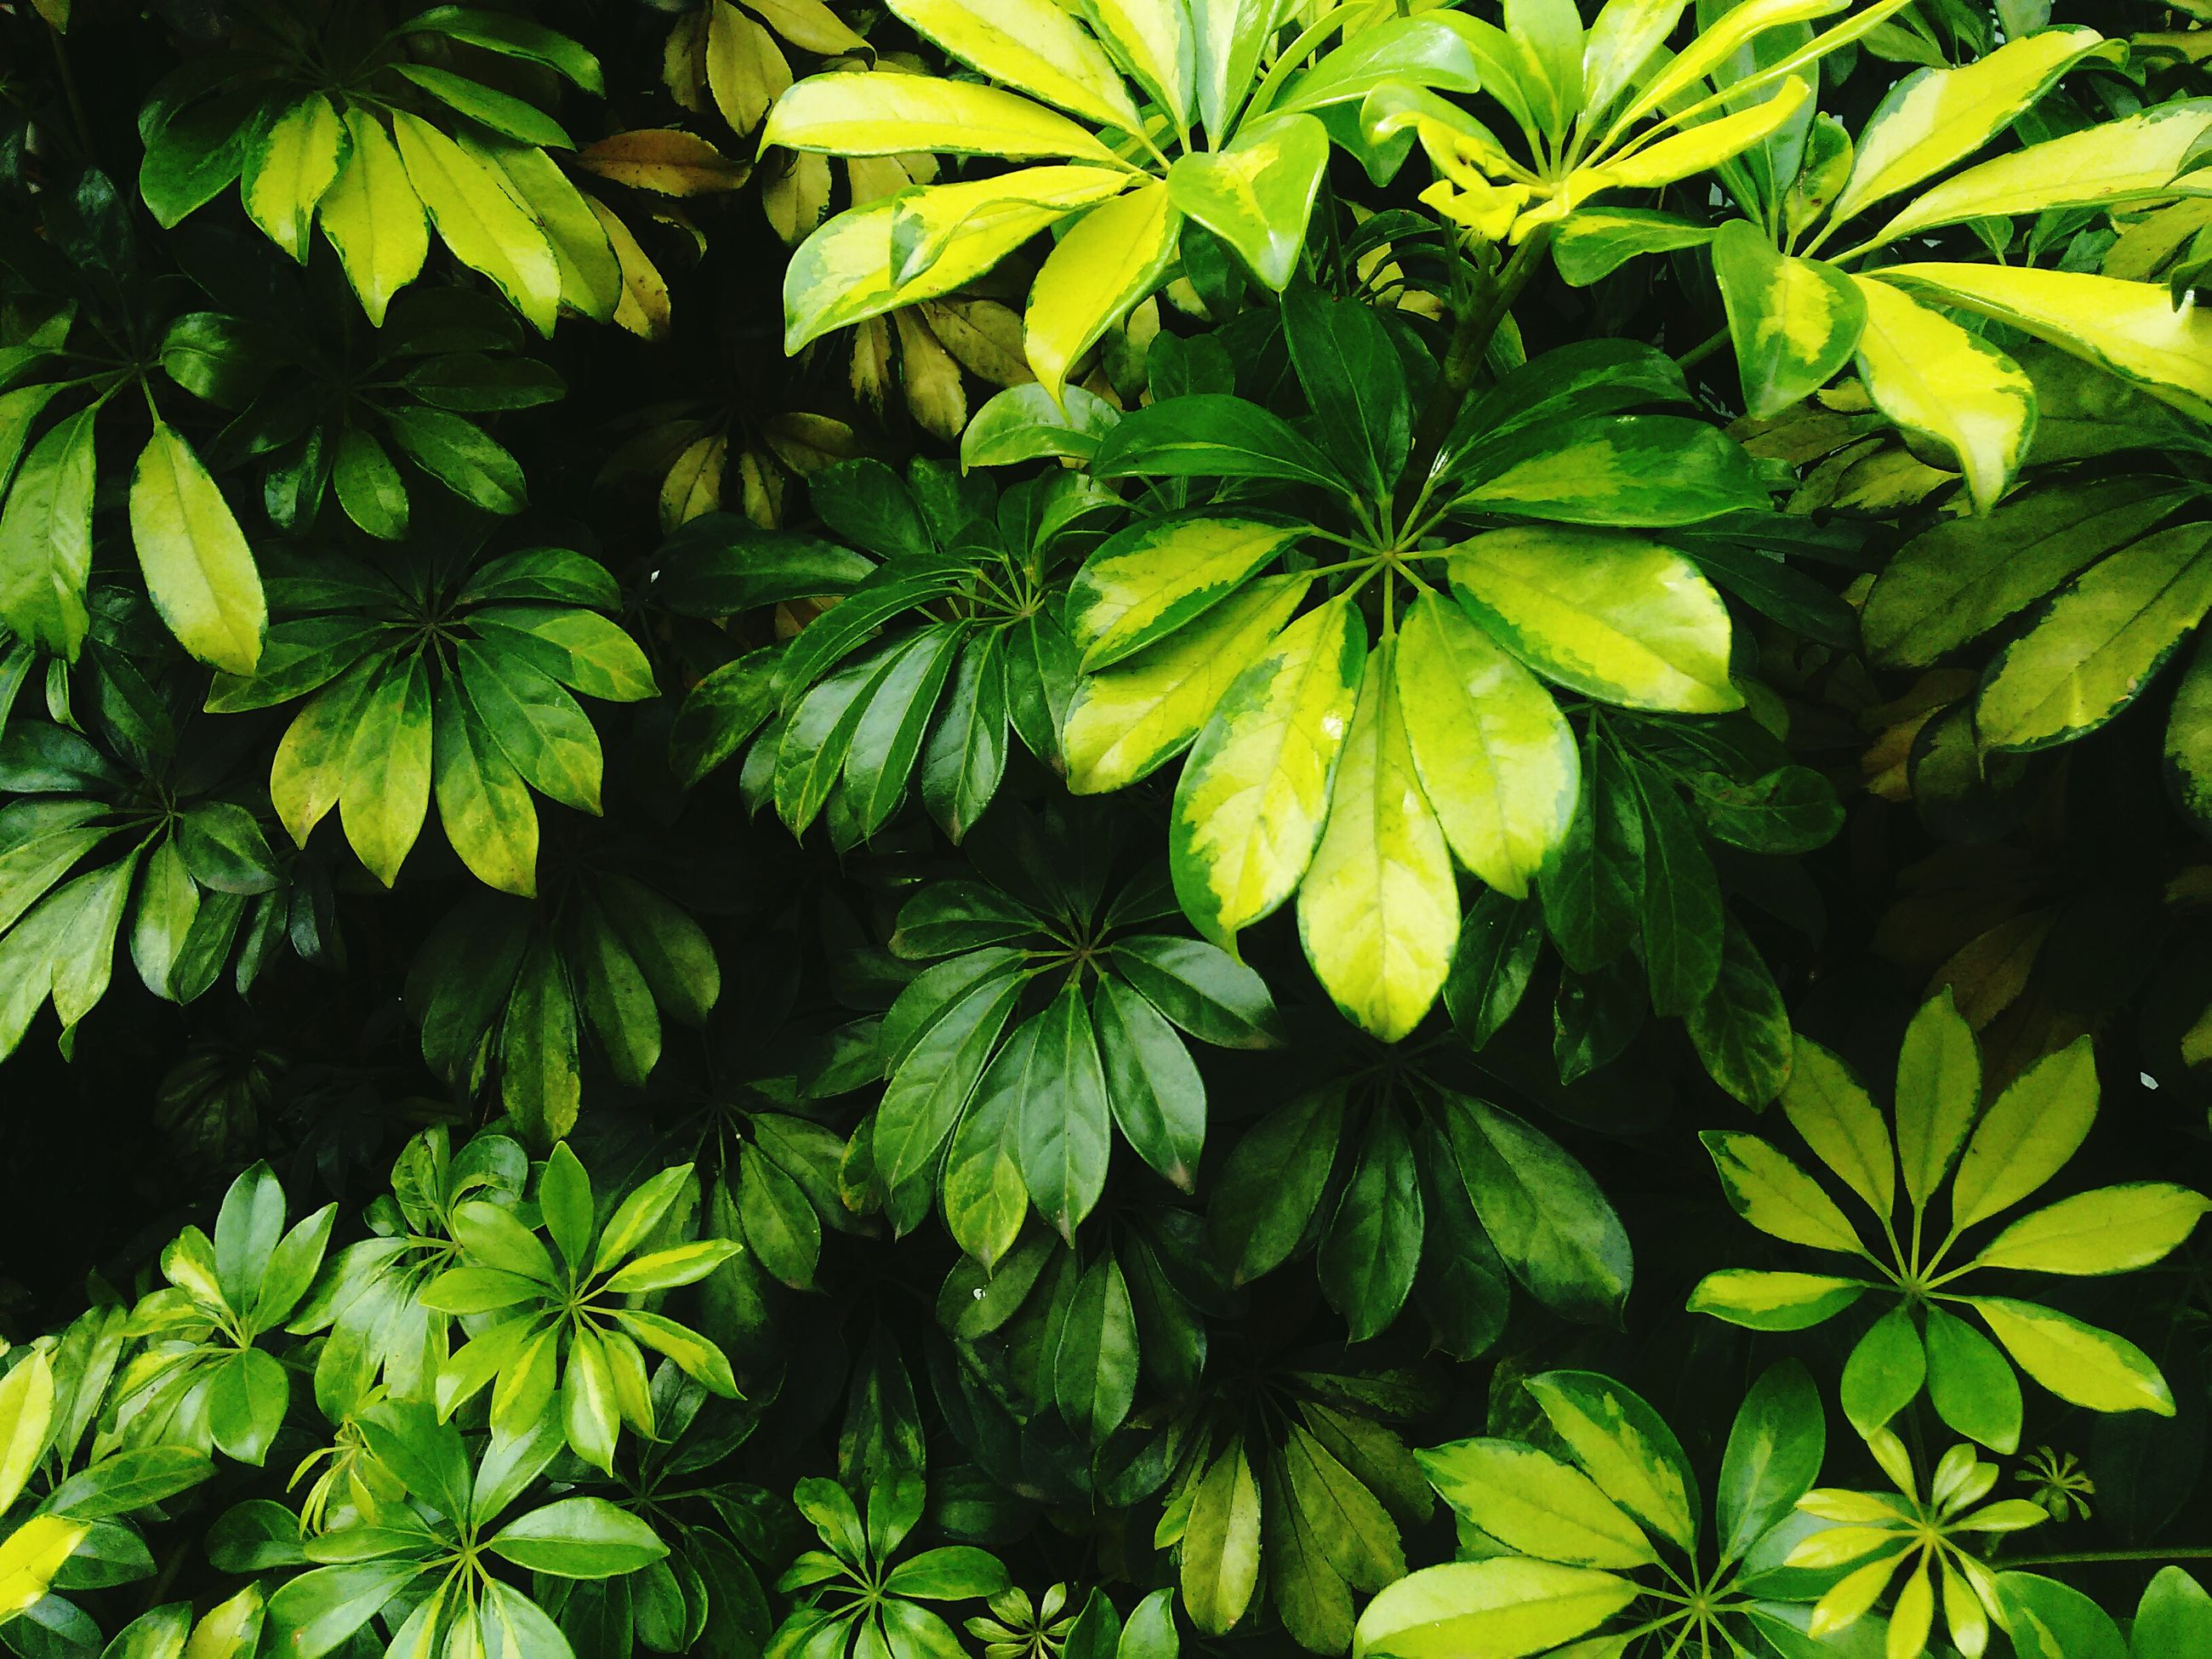 leaf, growth, green color, nature, full frame, plant, backgrounds, beauty in nature, tree, freshness, close-up, branch, lush foliage, green, leaves, outdoors, no people, day, low angle view, tranquility